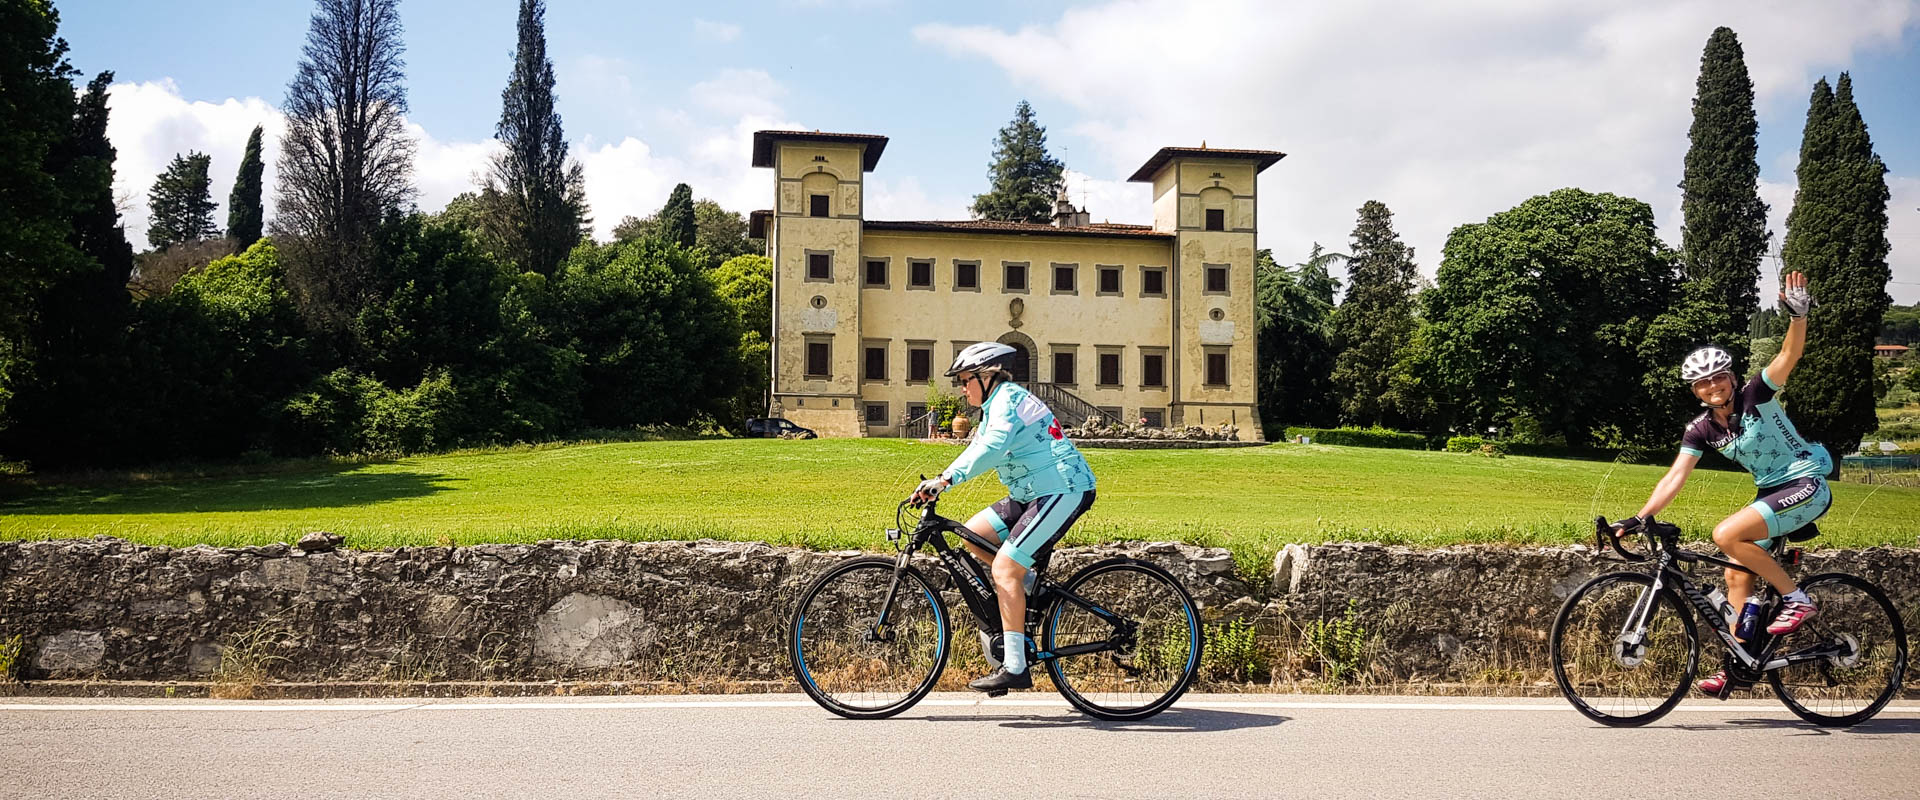 Tour of Tuscany - Italian Cycling Holiday with Topbike Tours